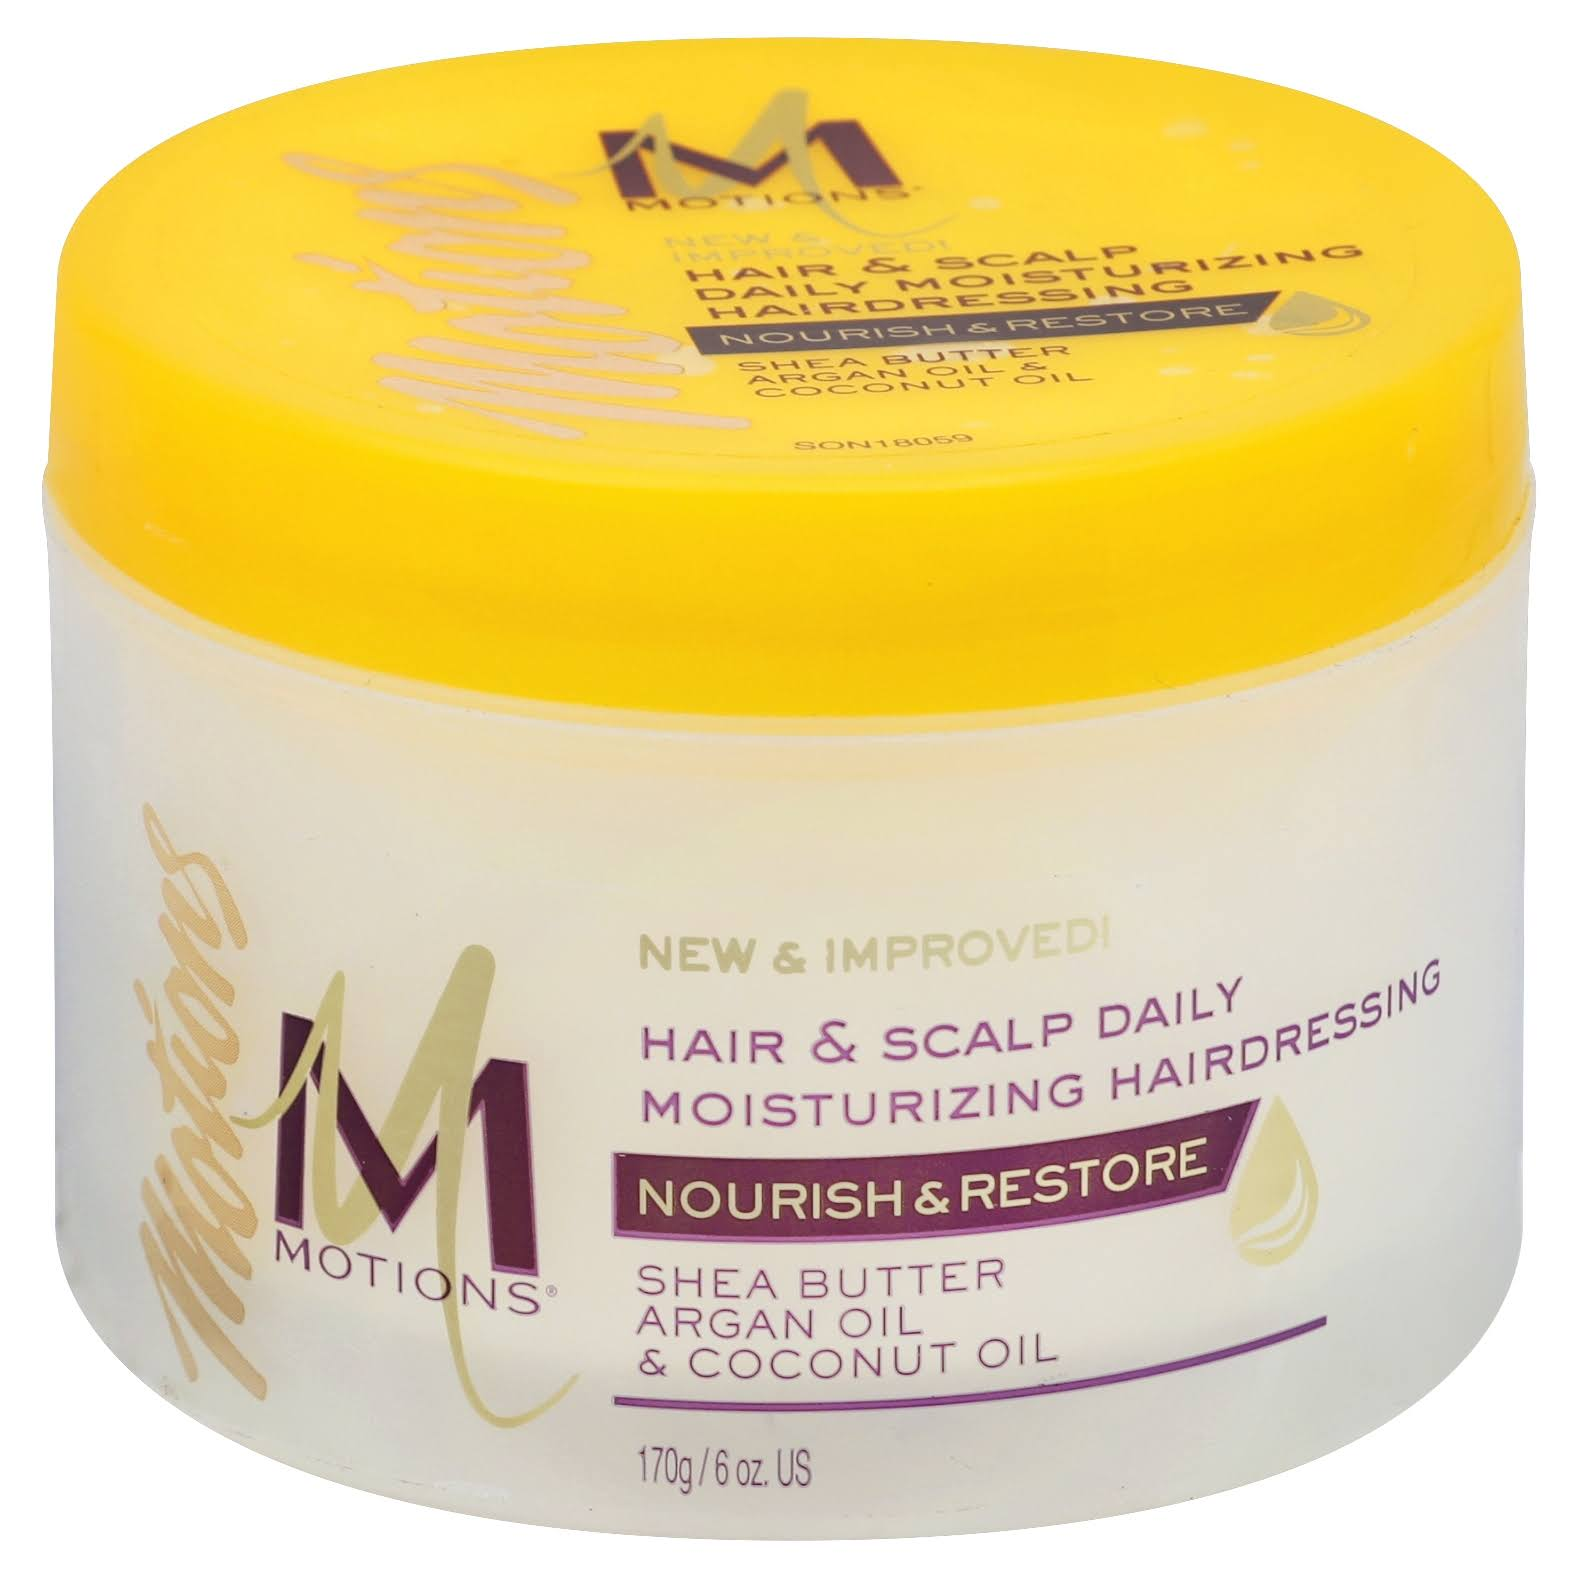 Motions Hair and Scalp Daily Moisturizing Hairdressing - 170g